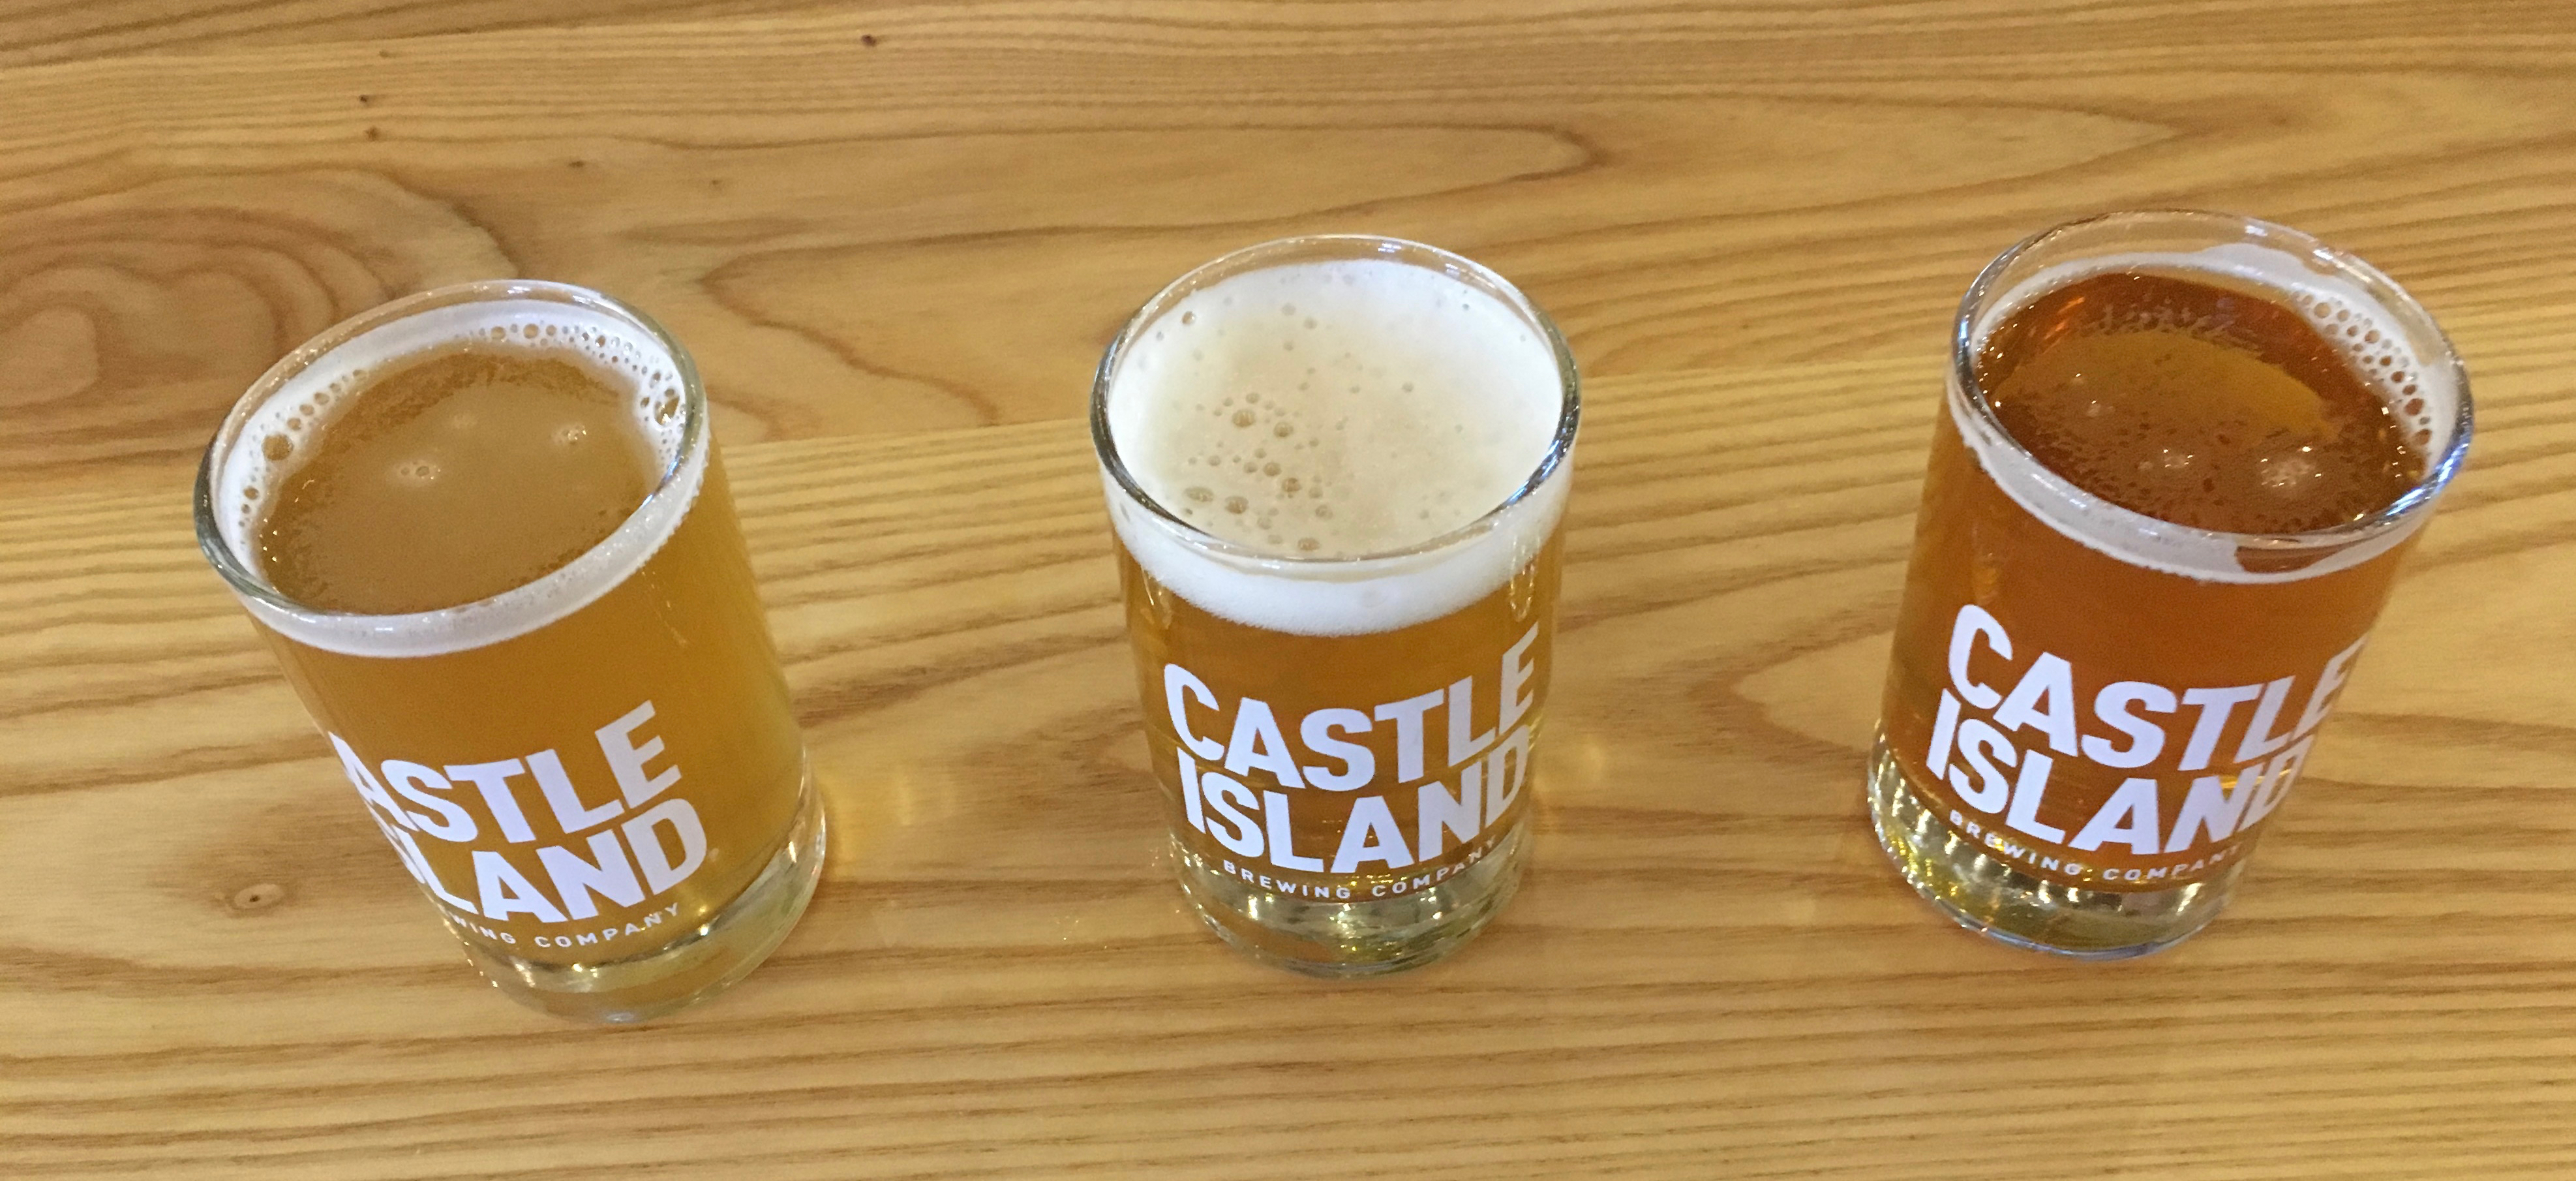 Castle Island Brewery